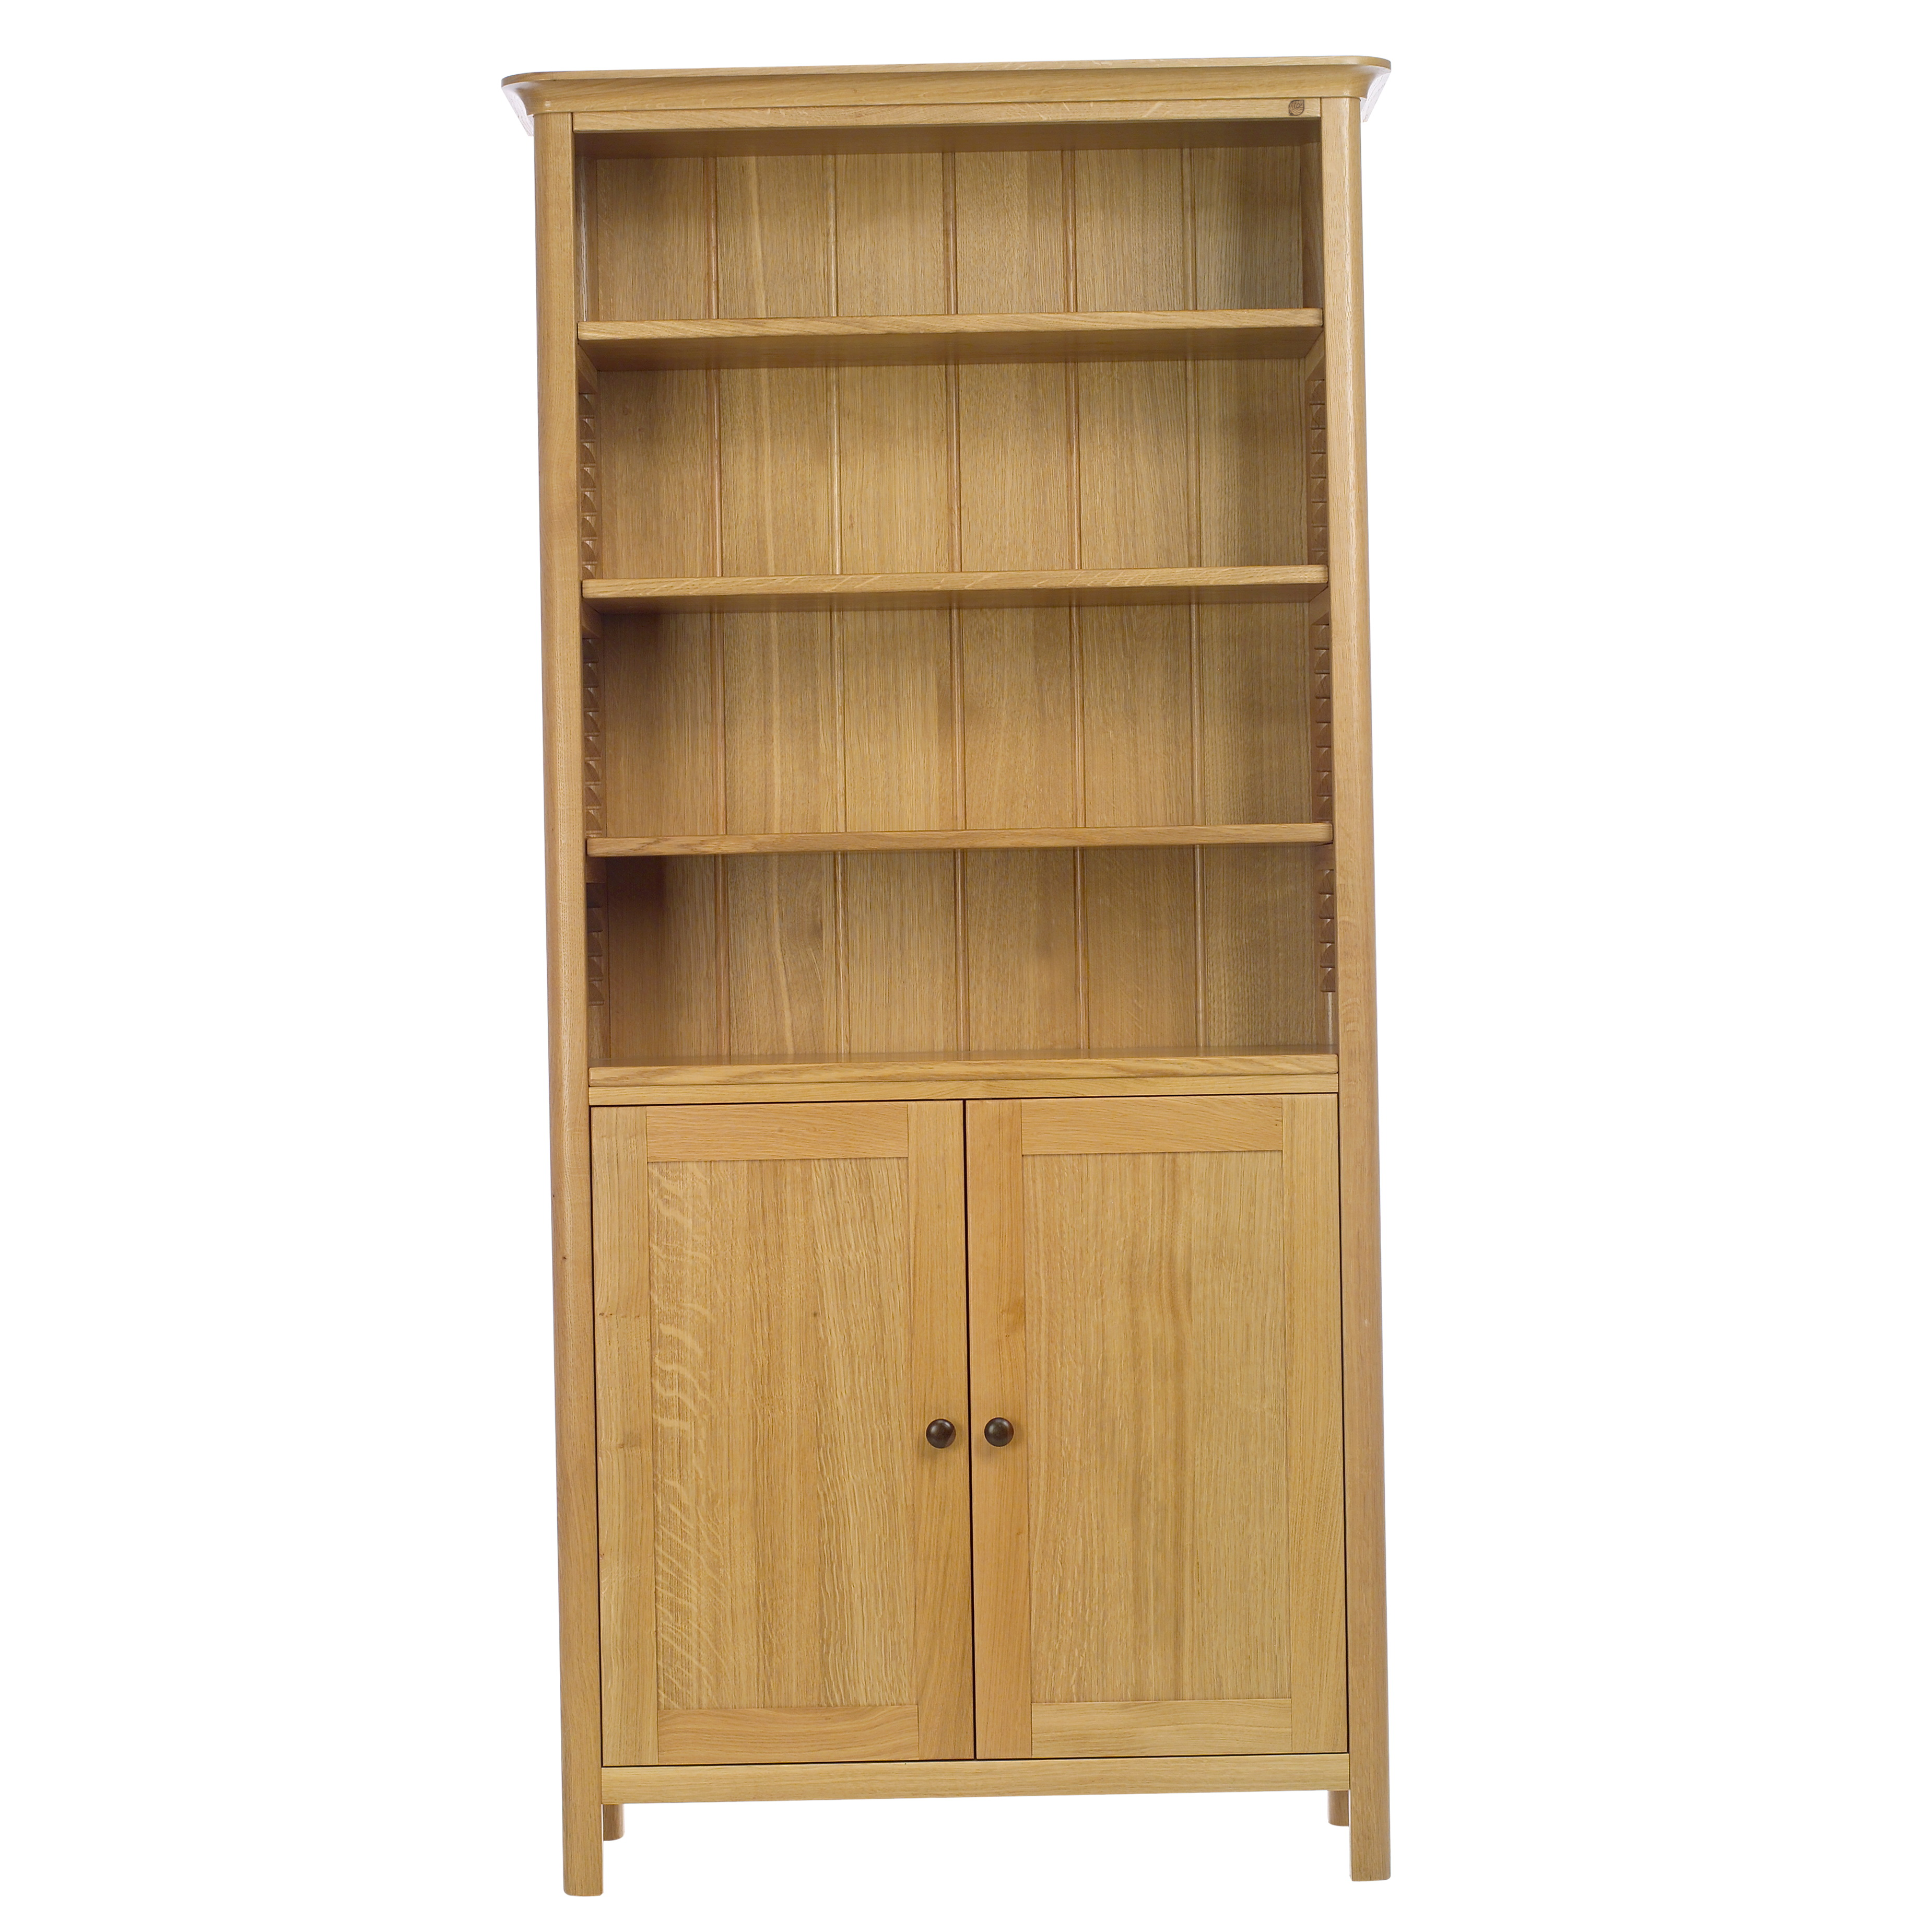 4 Shelf Bookcase With Doors